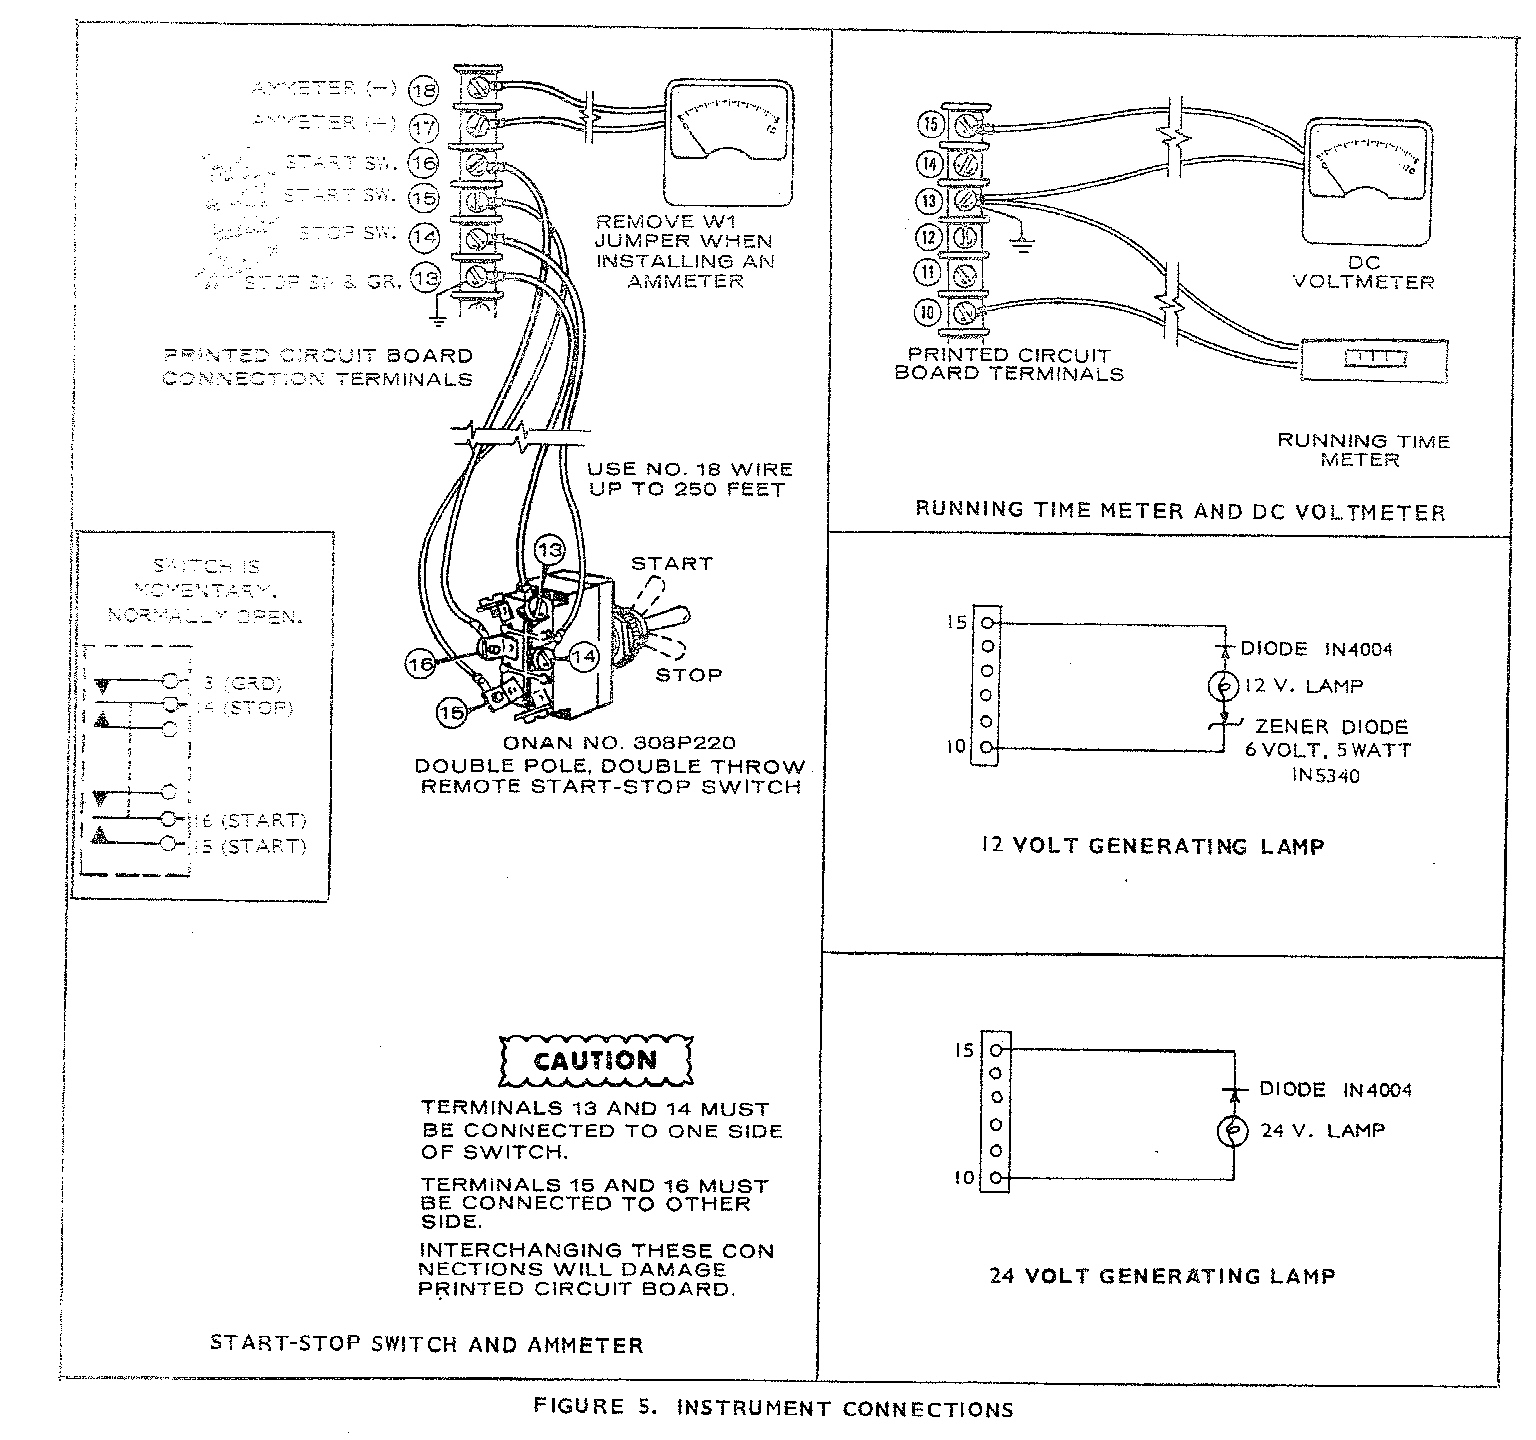 Onan Wiring Harness Color Code | Wiring Diagram - Kiefer Built Trailer Wiring Diagram